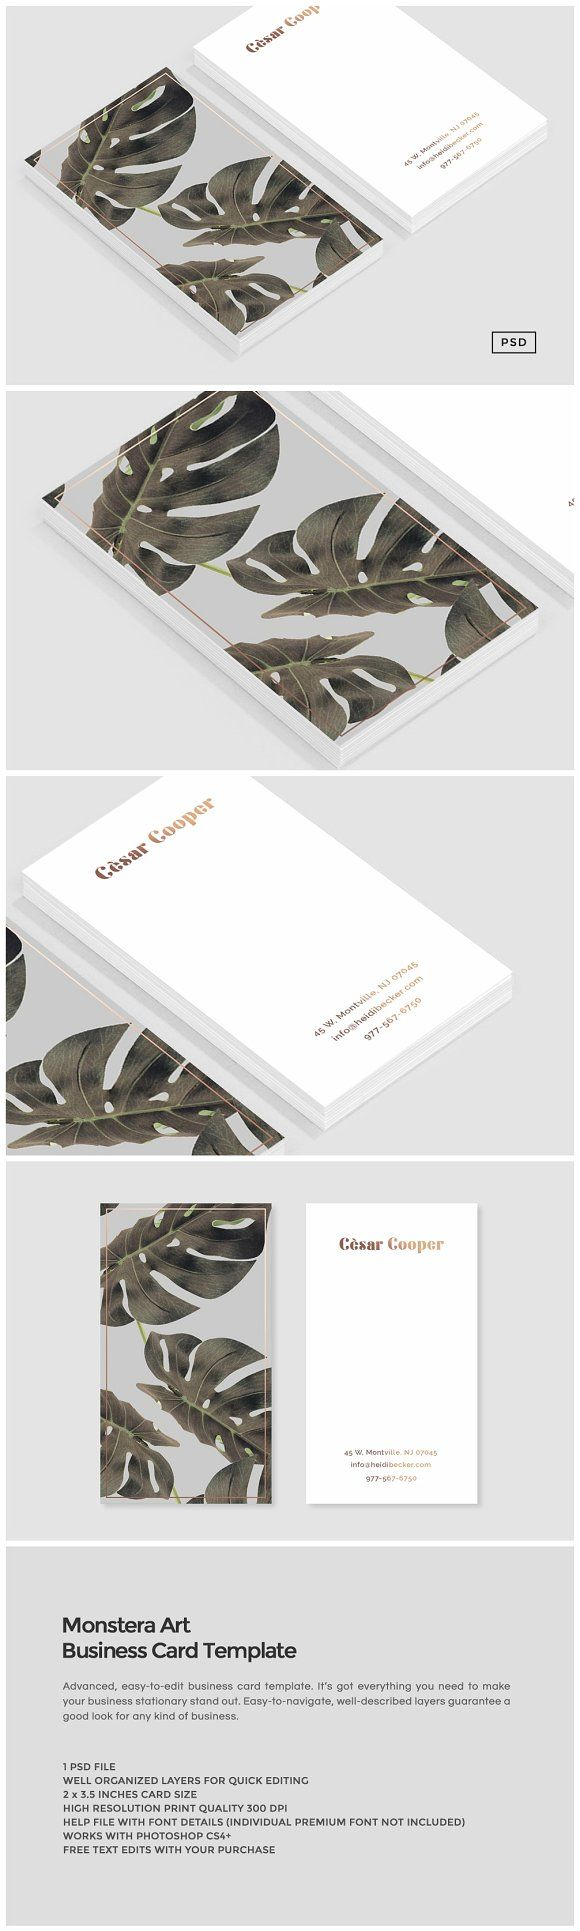 Monstera Art Business Card Template by The Design Label on @creativemarket